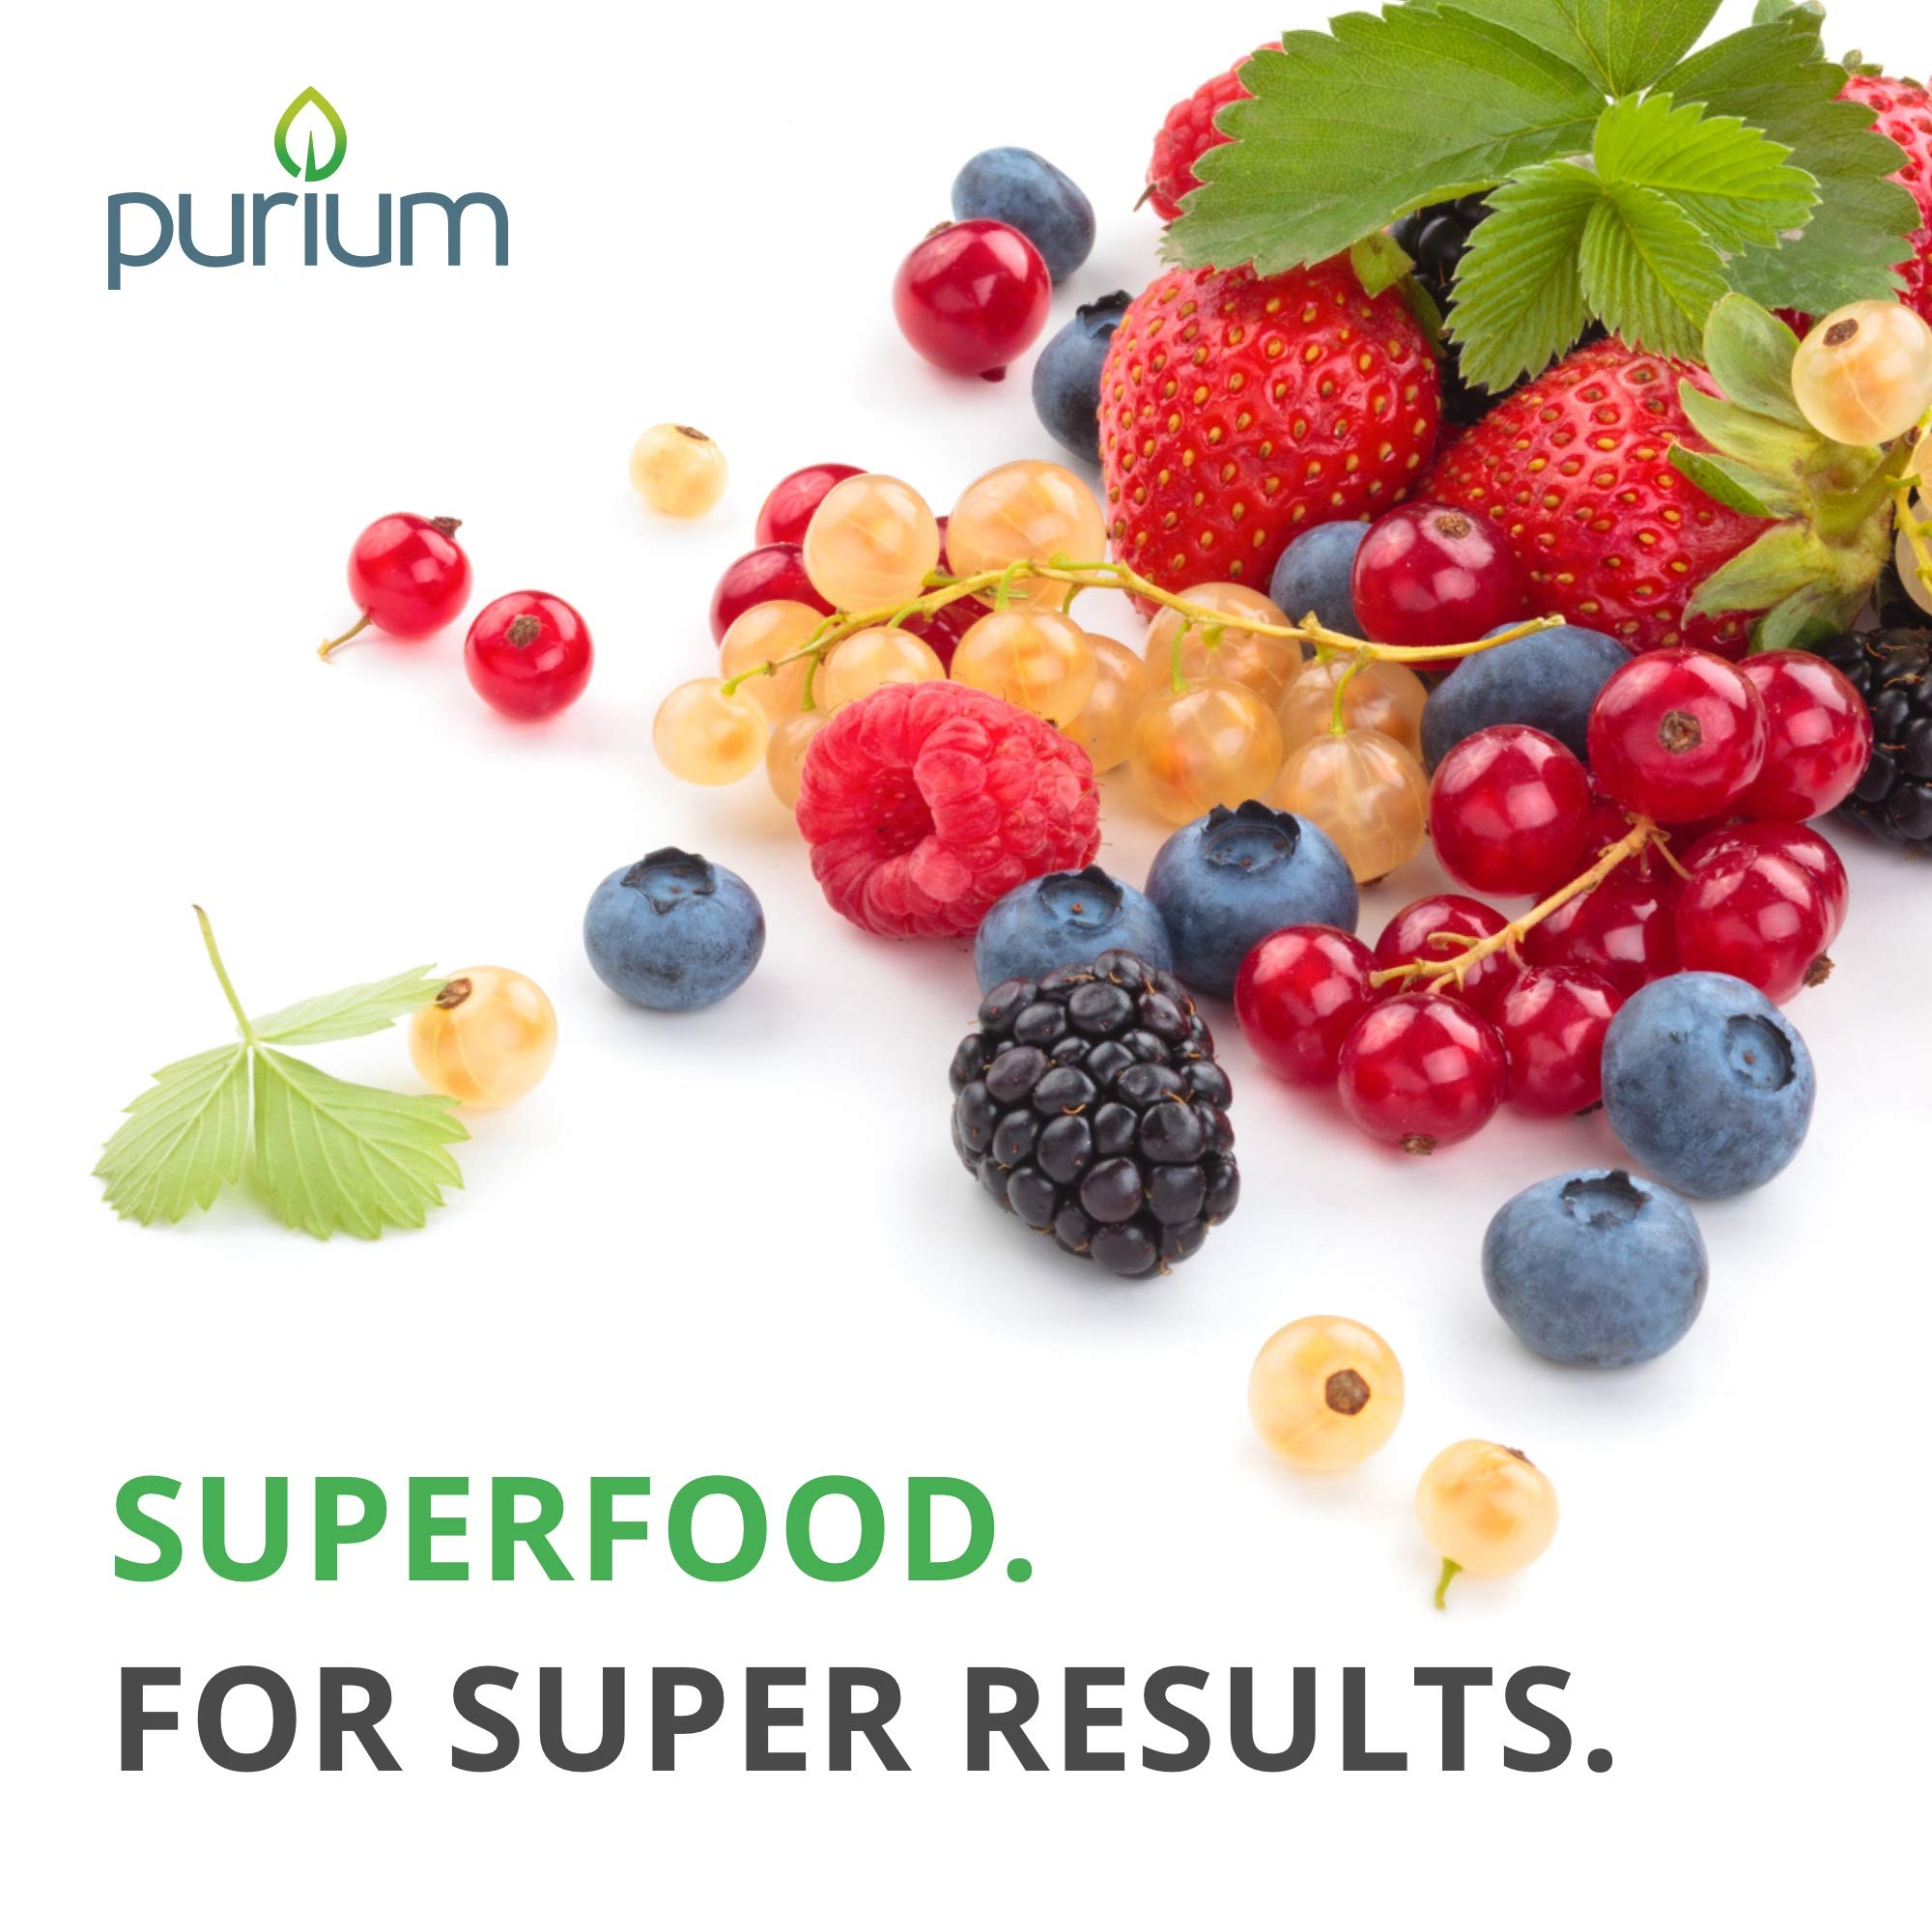 Purium Power Shake - Apple Berry Flavor - 1065 grams - Vegan Meal Replacement Powder, Protein, Vitamins & Minerals - Certified USDA Organic, Gluten Free, Kosher - 30 Servings by Purium (Image #5)